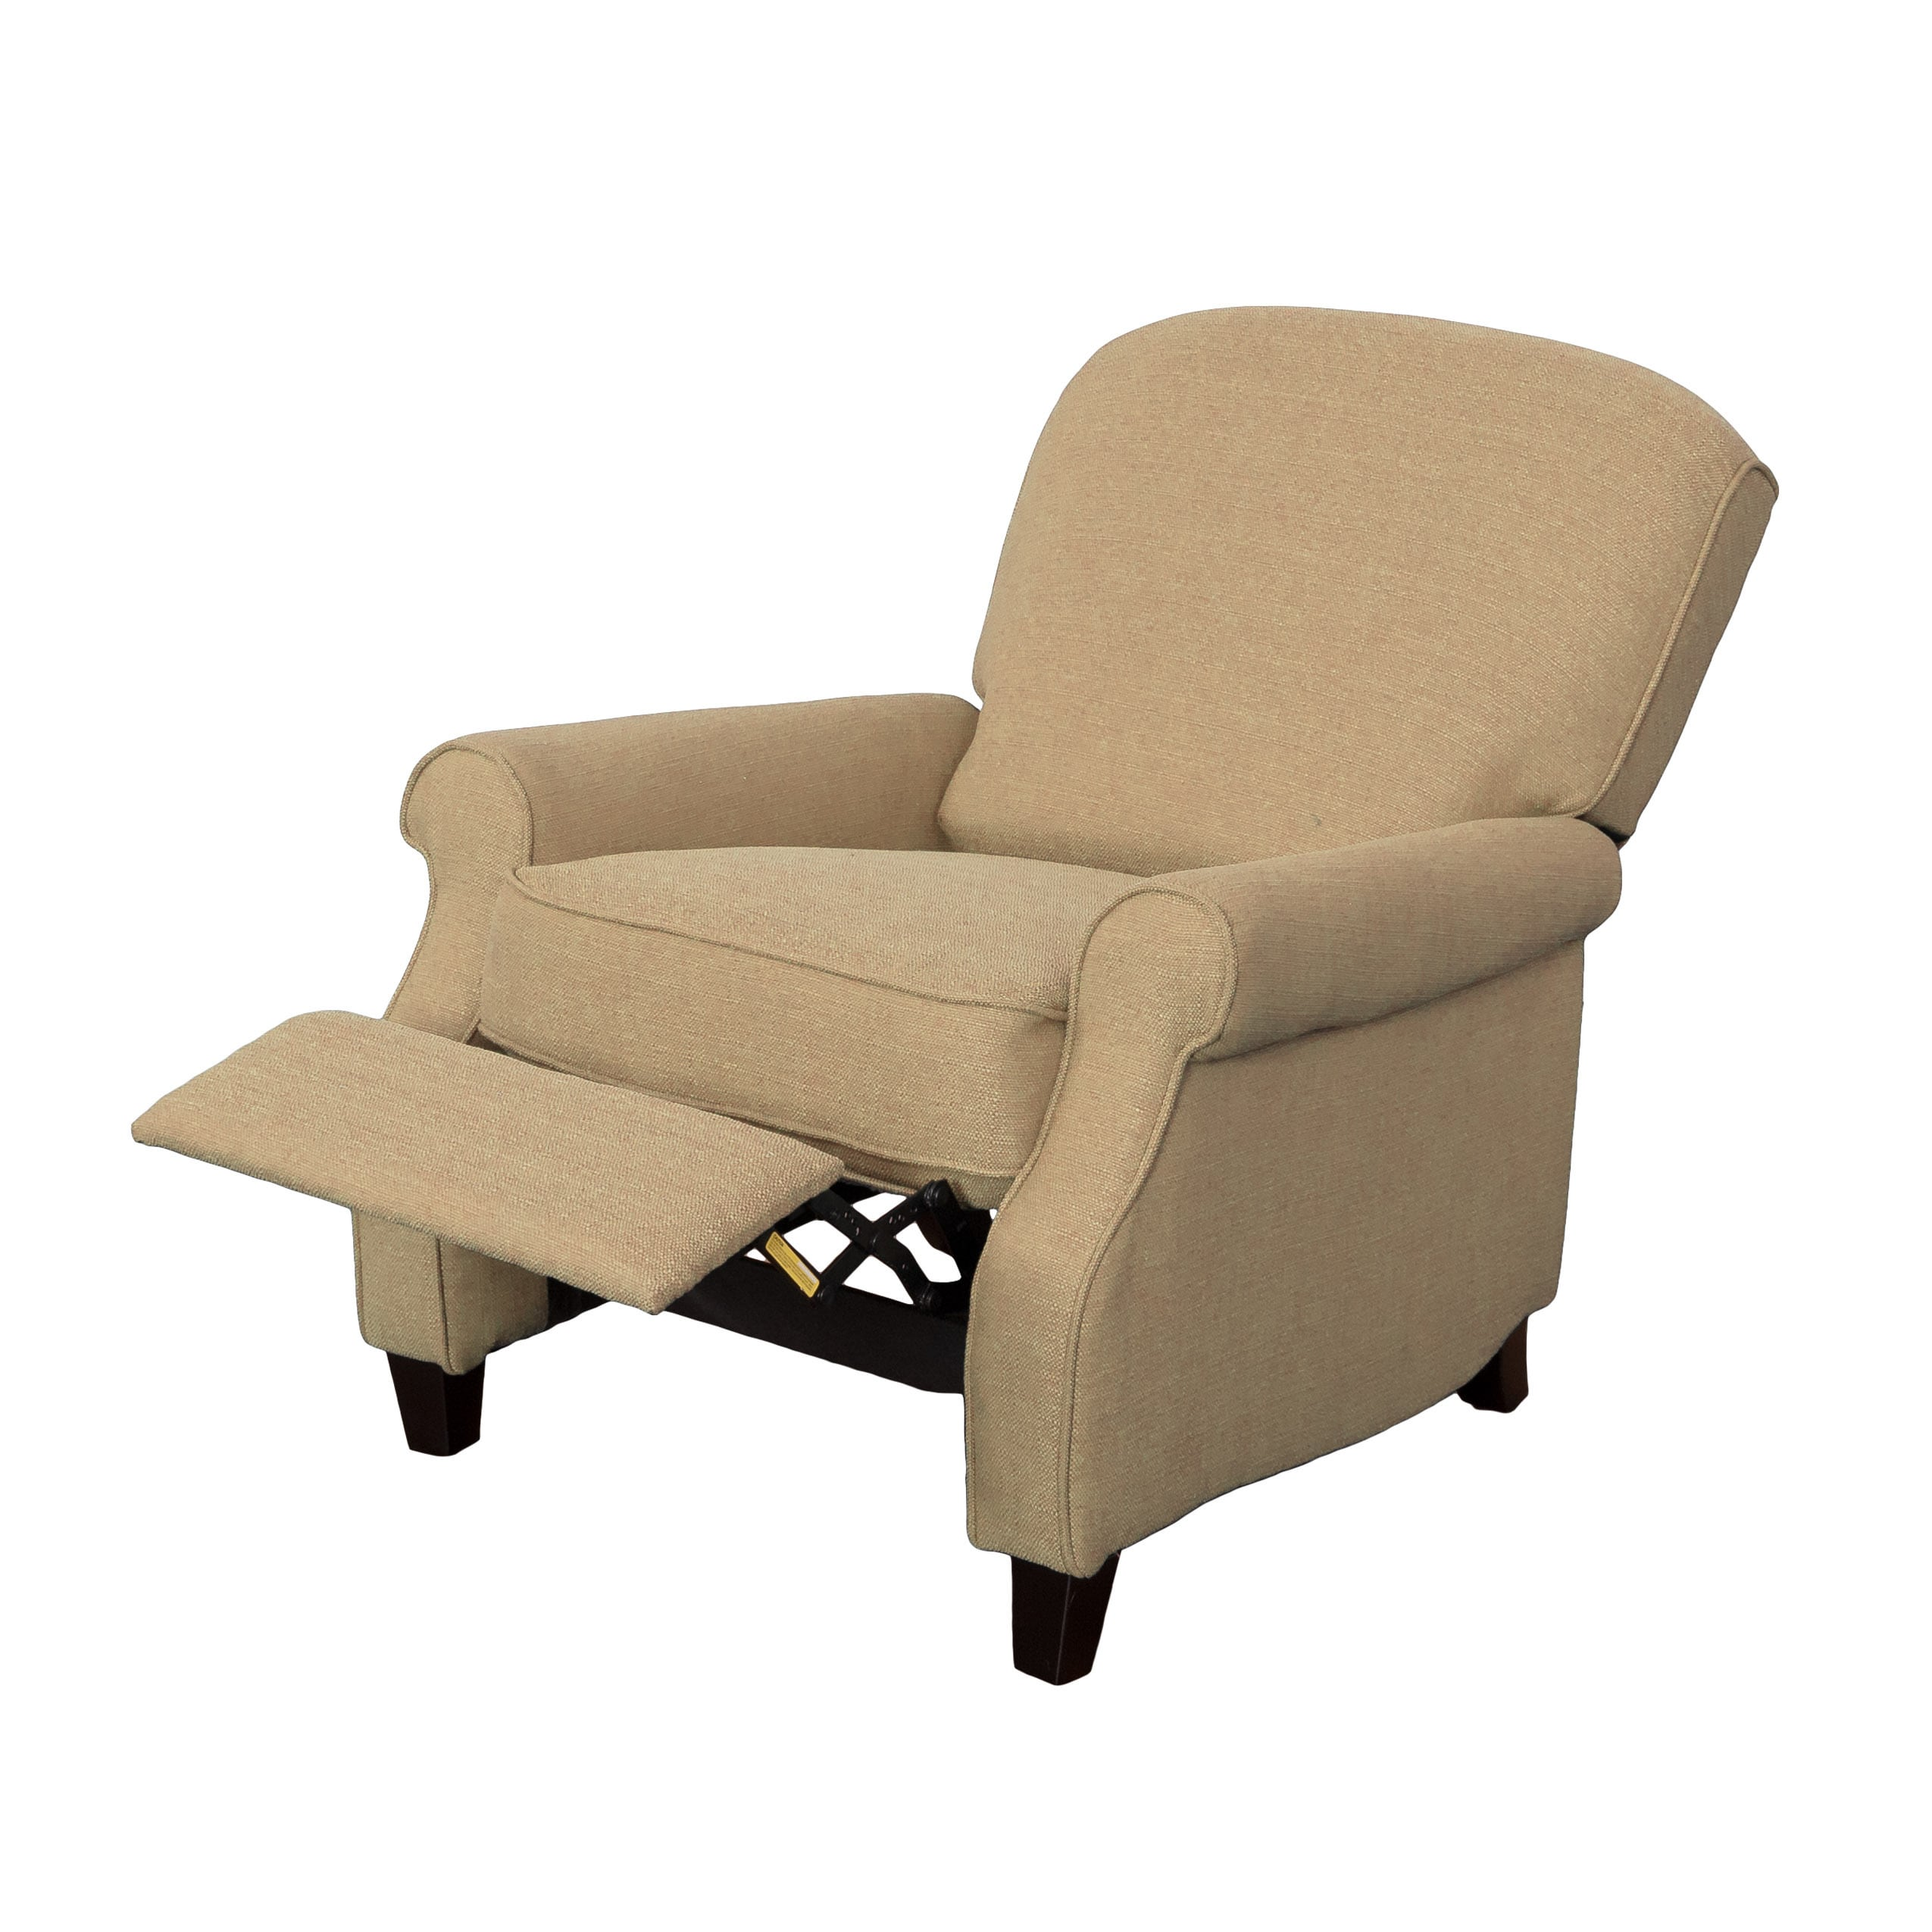 CorLiving Noah Linen Fabric Recliner Armchair   Free Shipping Today    Overstock   19889707